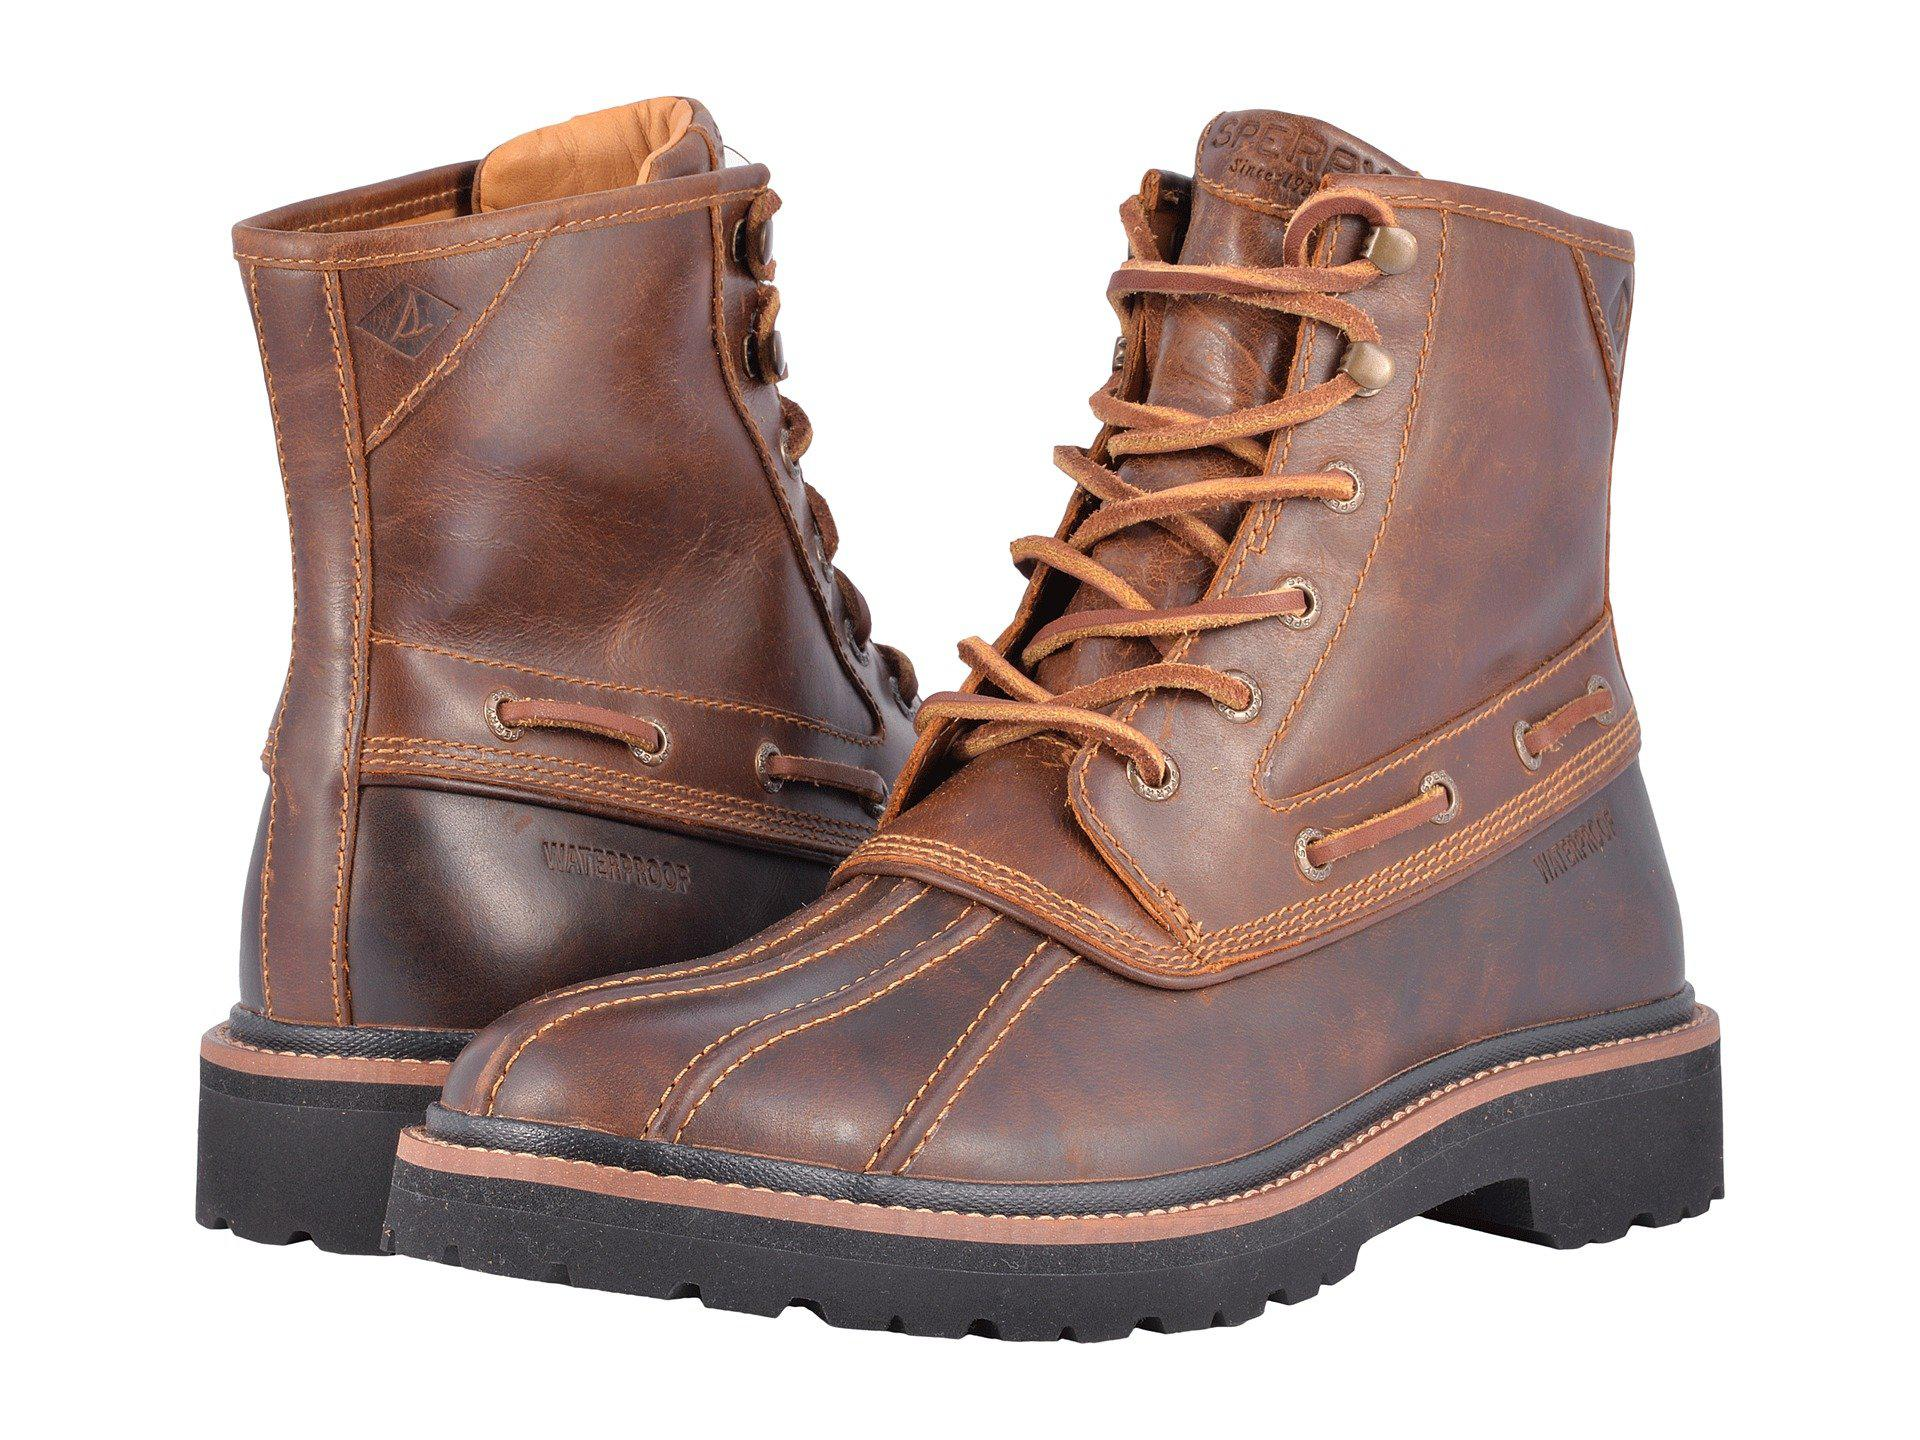 Gold Cup Lug Duck Boot in Brown